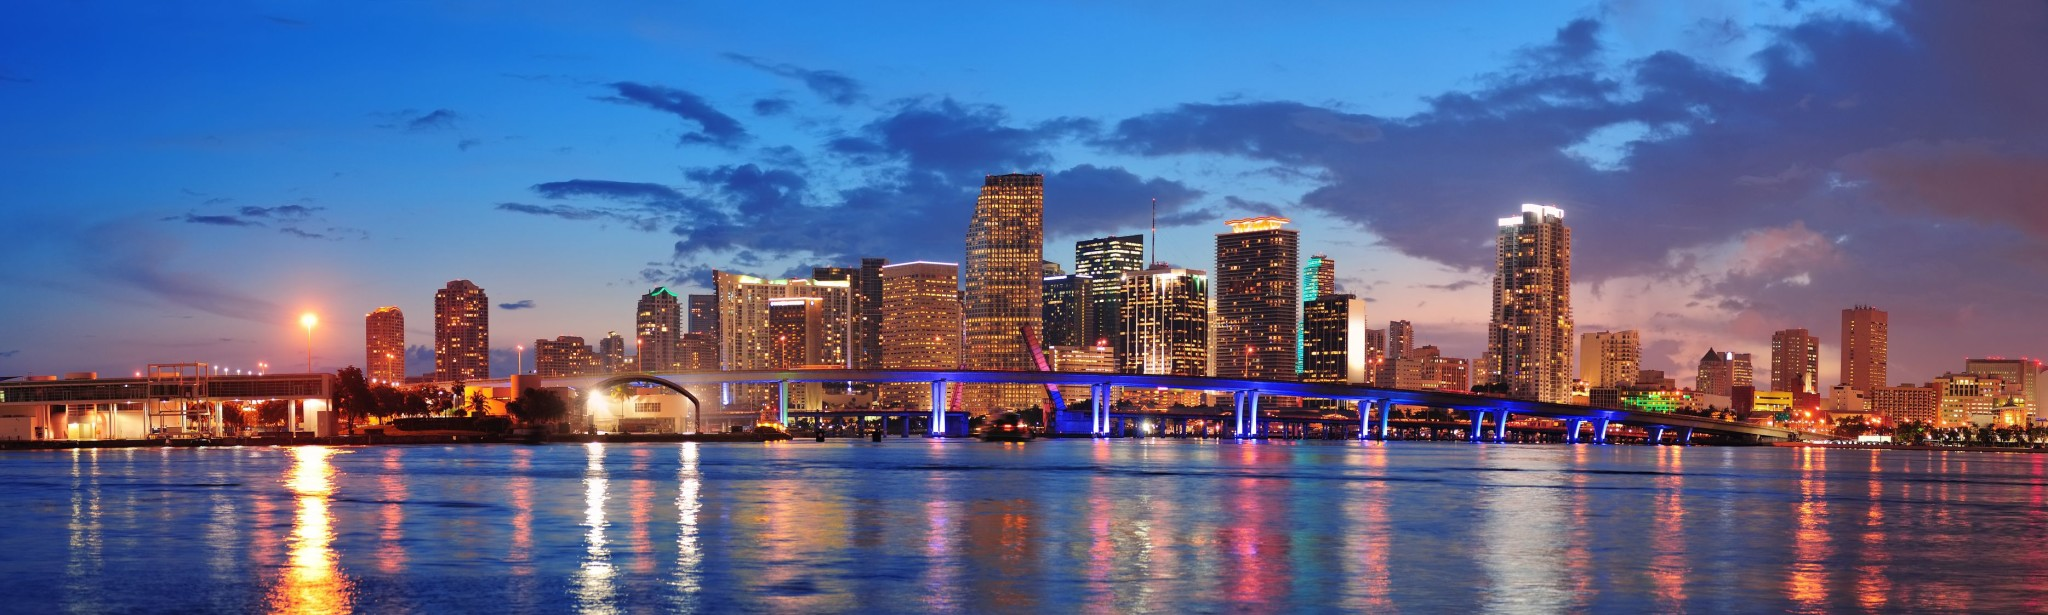 Miami Layover | Layover Guide